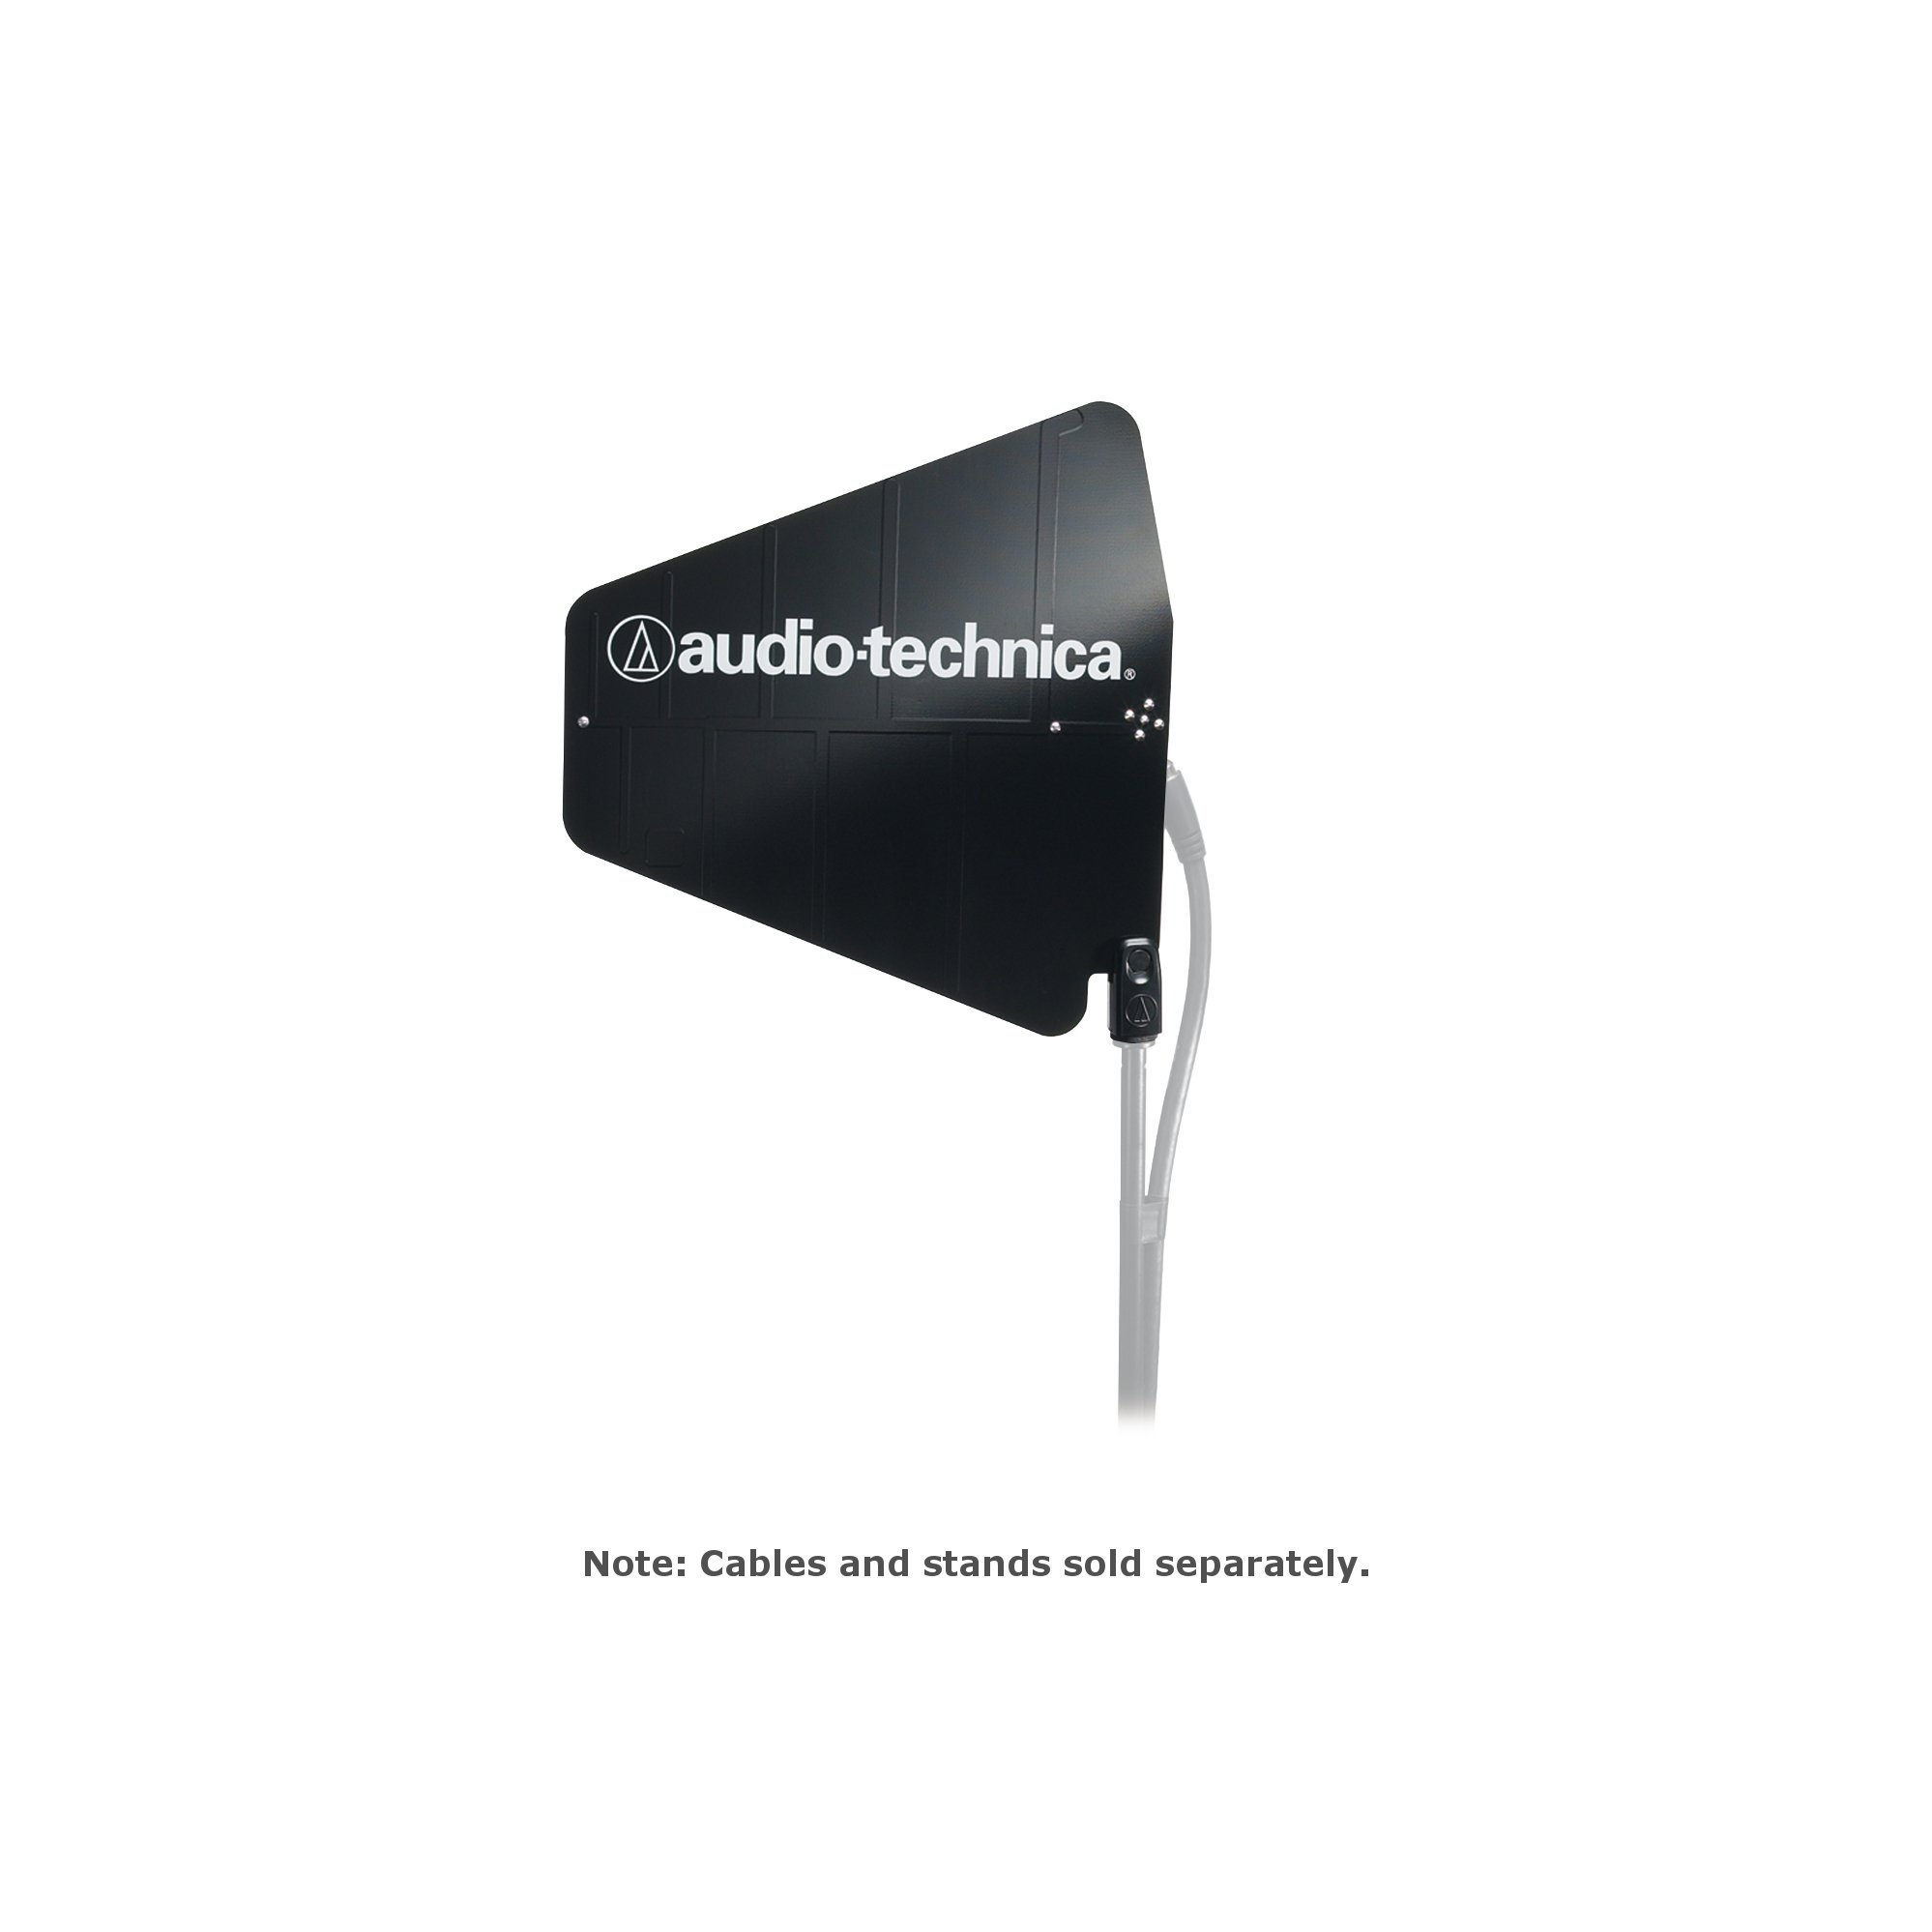 Audio-Technica ATW-A49S Single UHF Wide-Band Directional LPDA Antenna for IEM Systems ATW-A49S